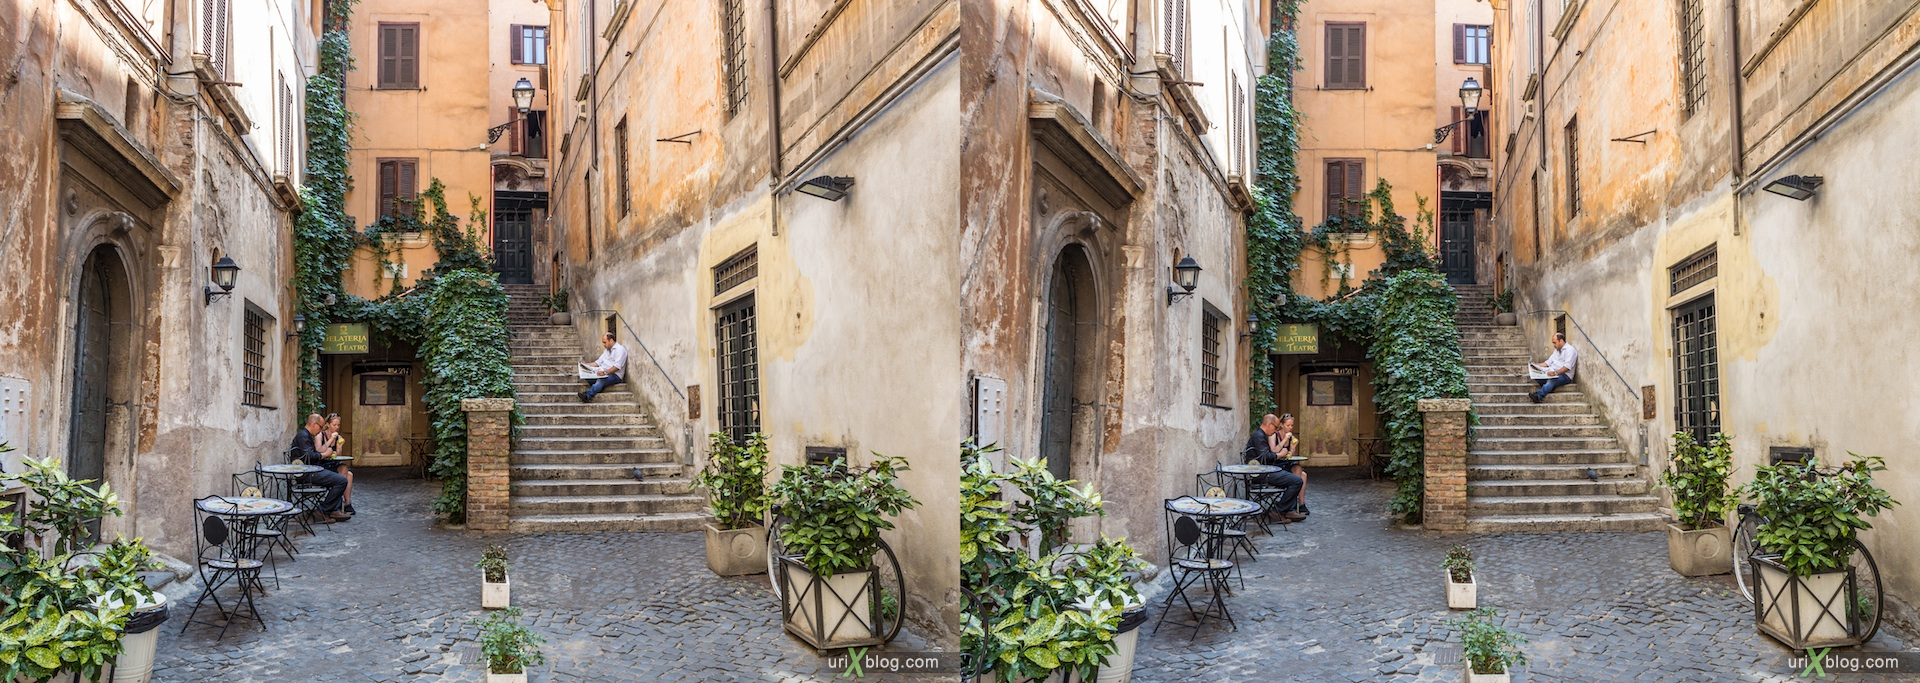 2012, piazza di San Salvatore in Lauro square, via dei Coronari street, corner, nook, backstreet, 3D, stereo pair, cross-eyed, crossview, cross view stereo pair